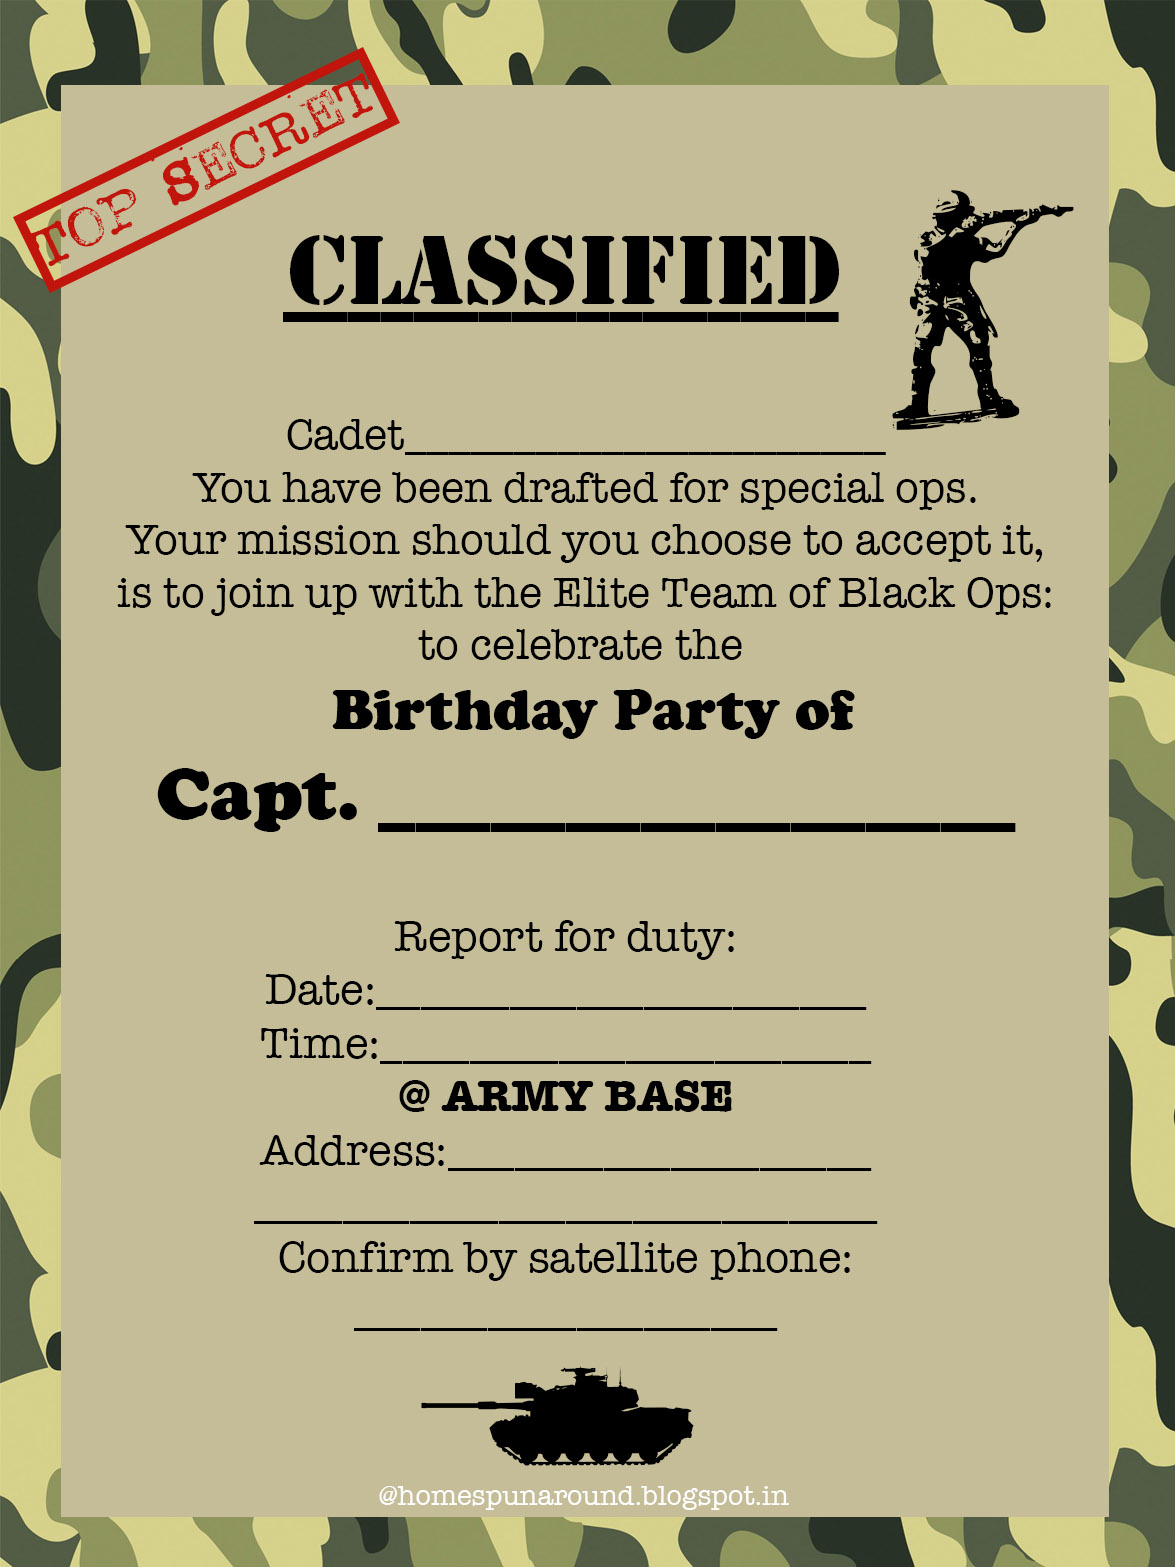 an army themed birthday party with free